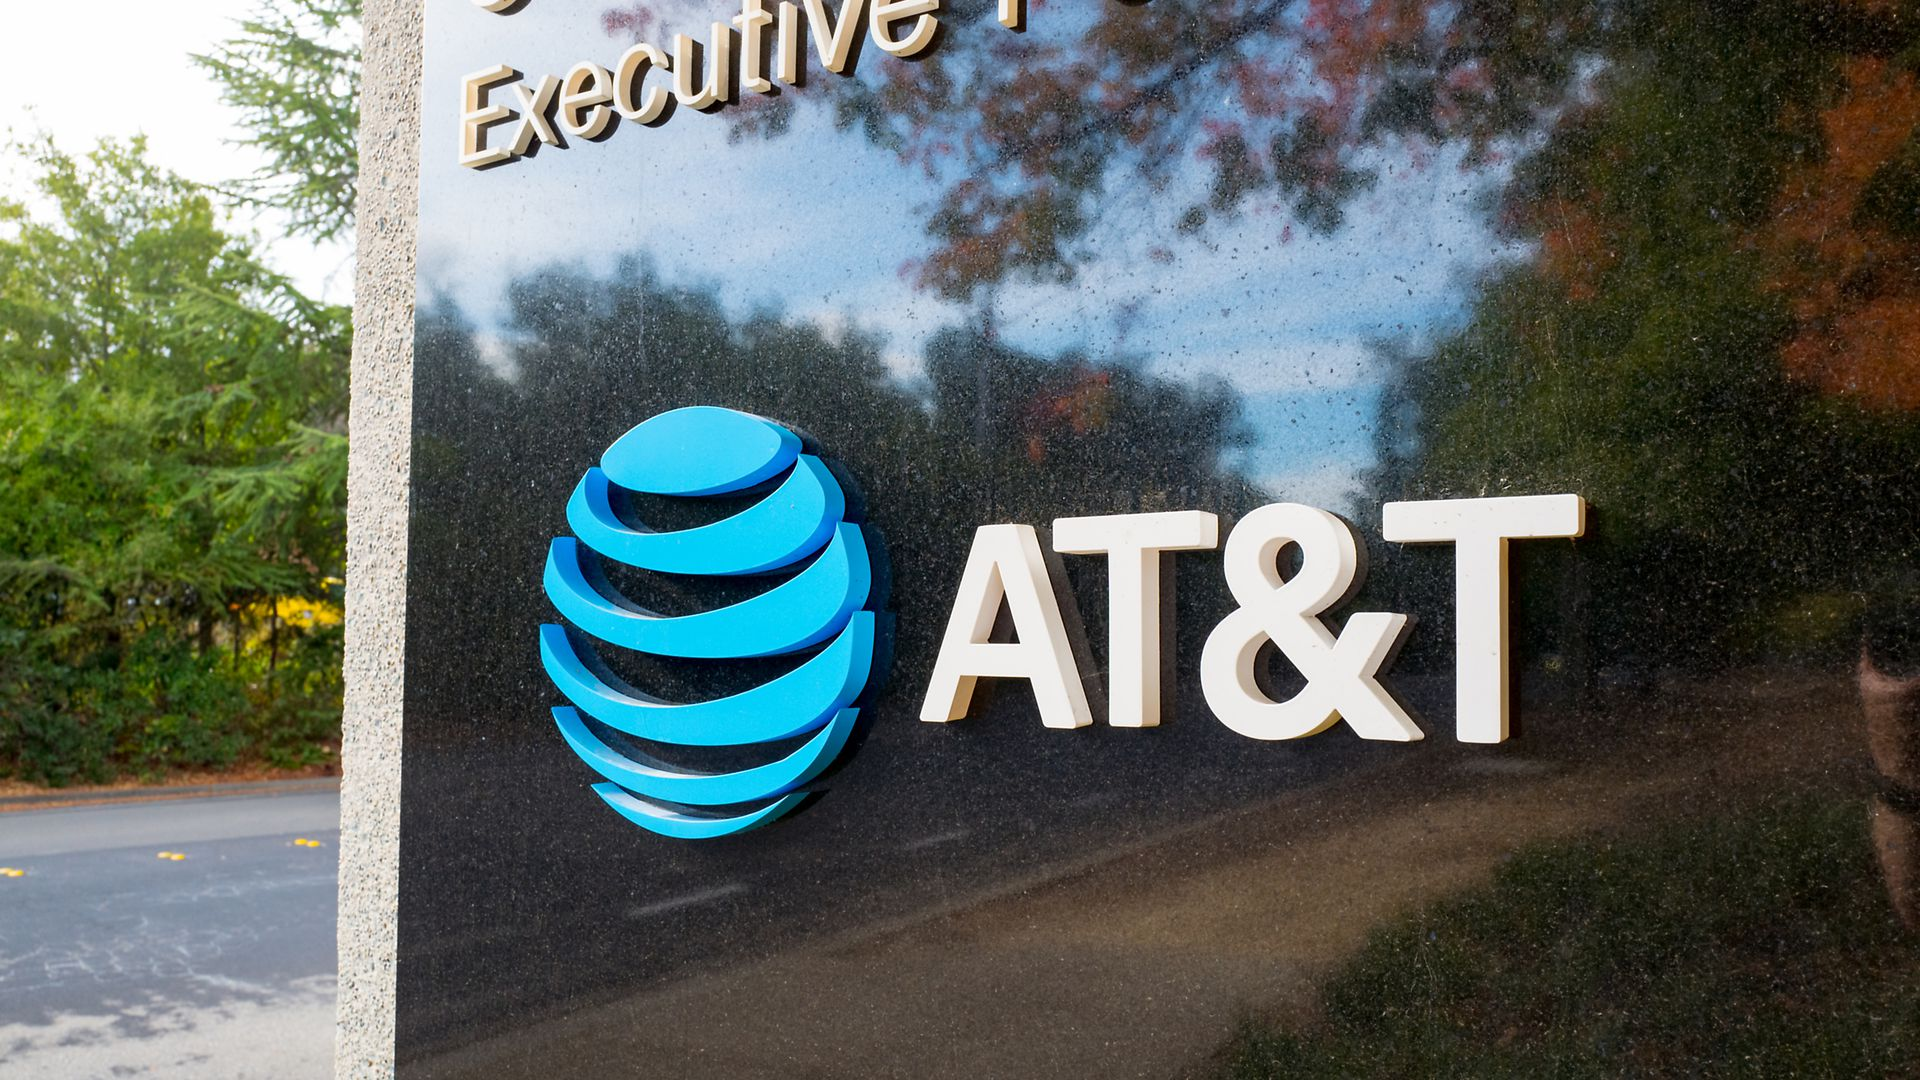 AT&T files FCC complaint against TV stations over DirecTV blackout